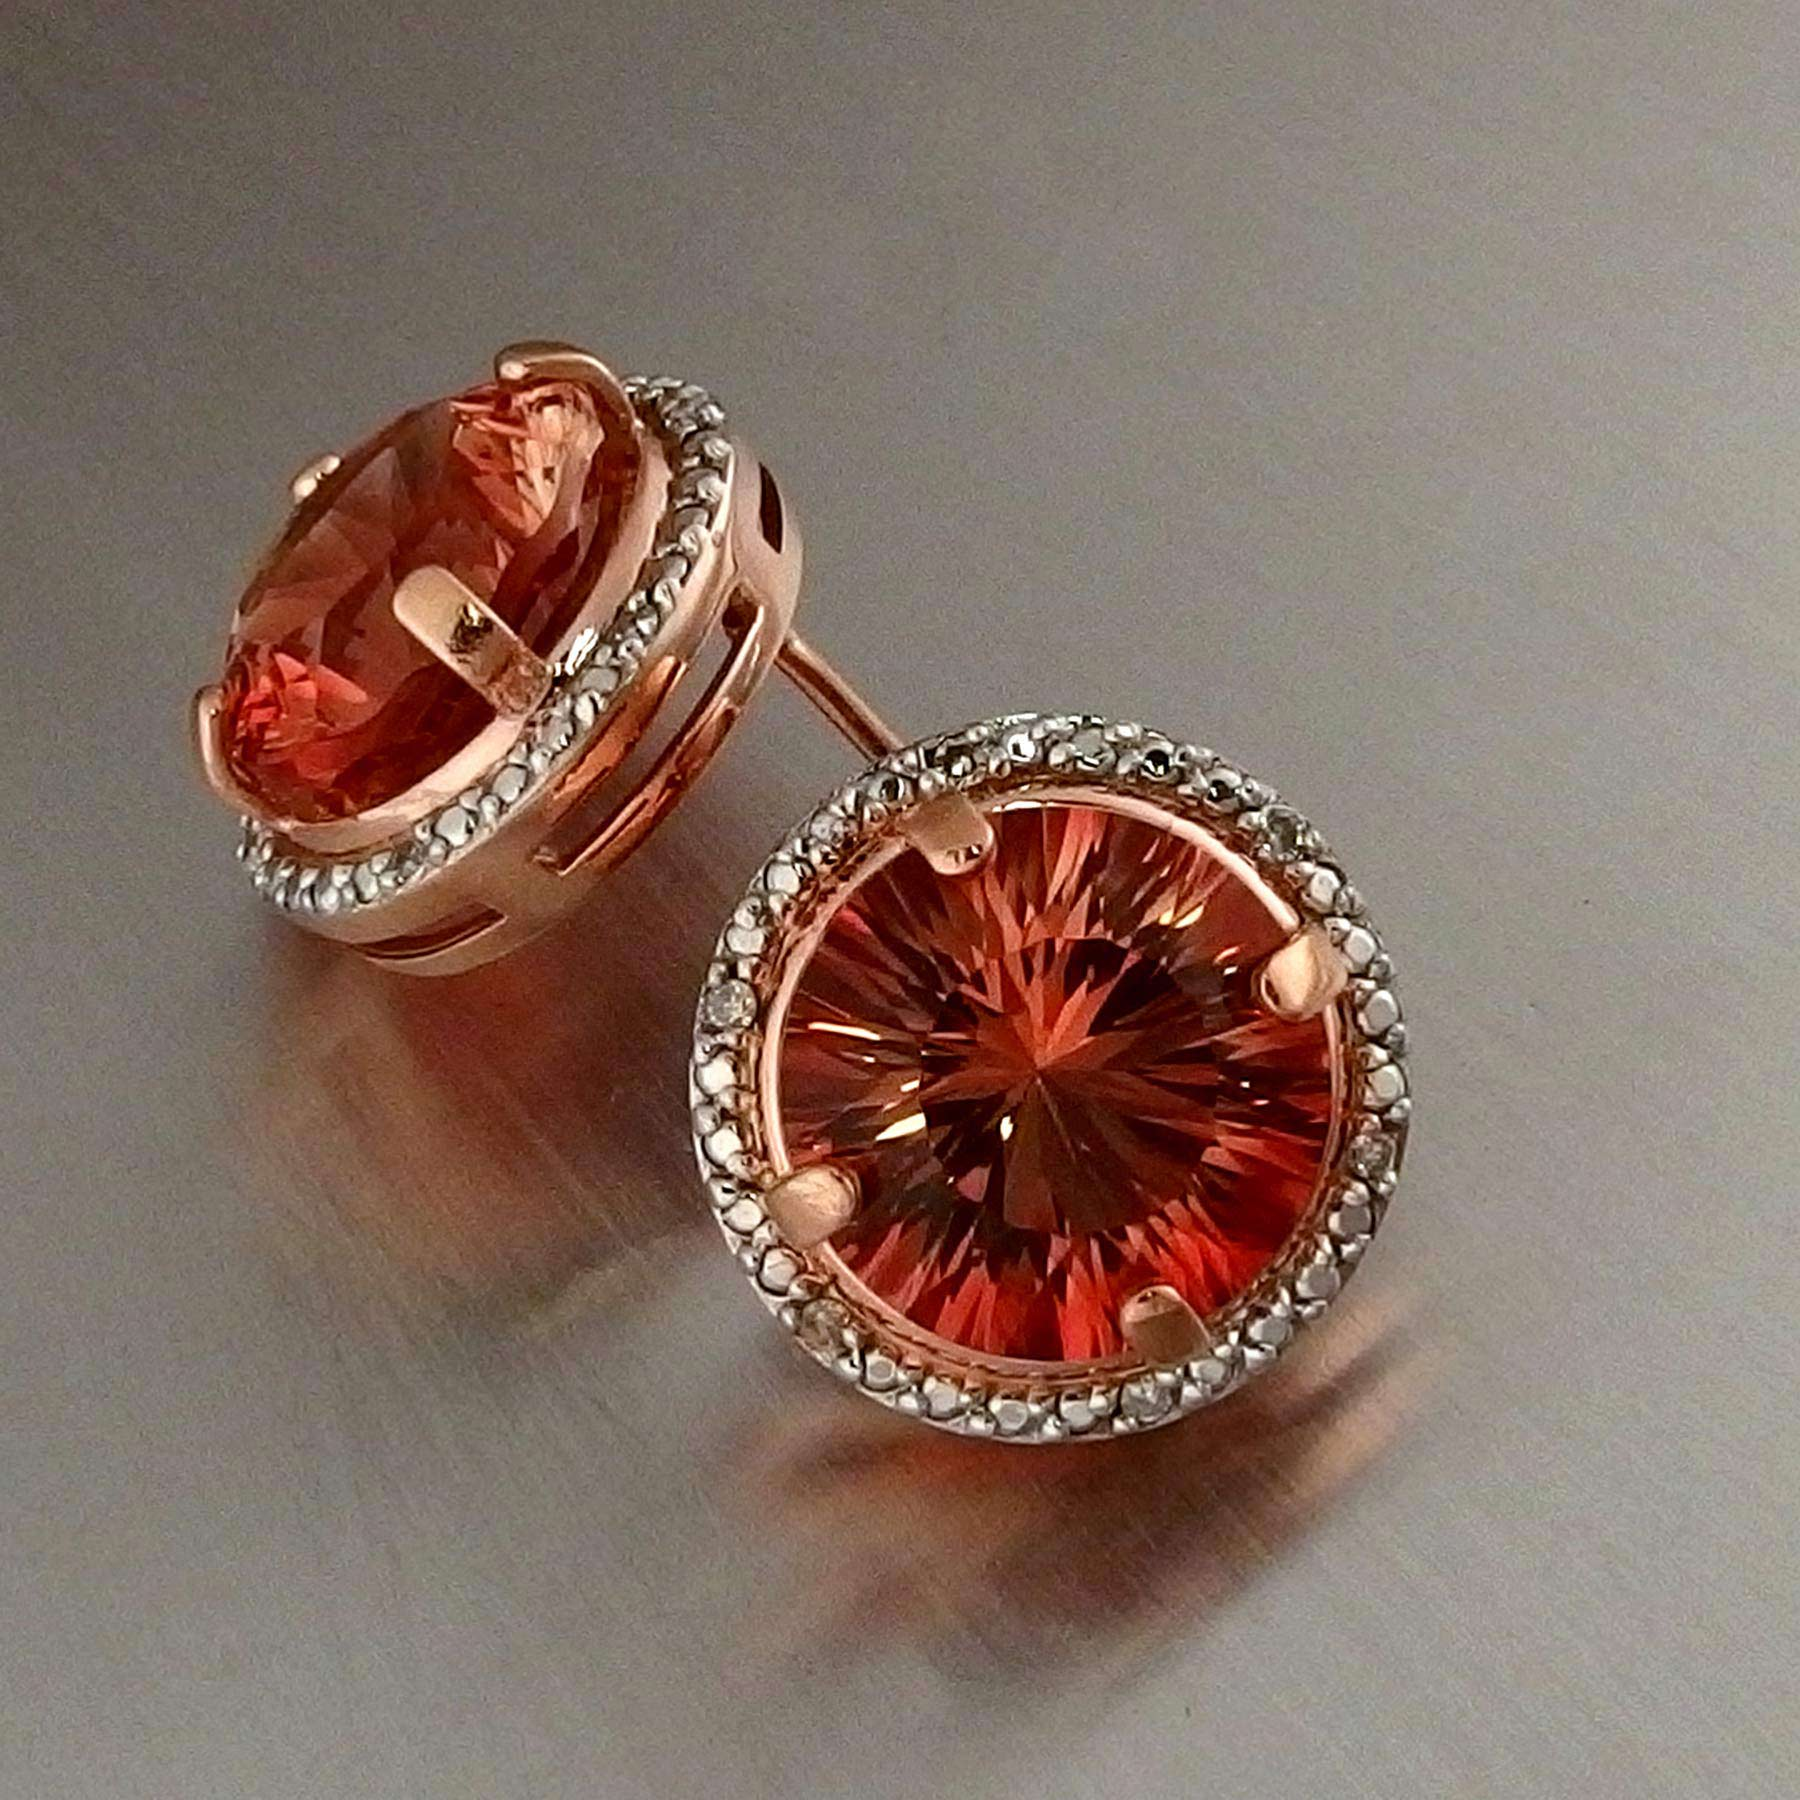 stone engagement dfjd sunstone custom pin rings sun ring